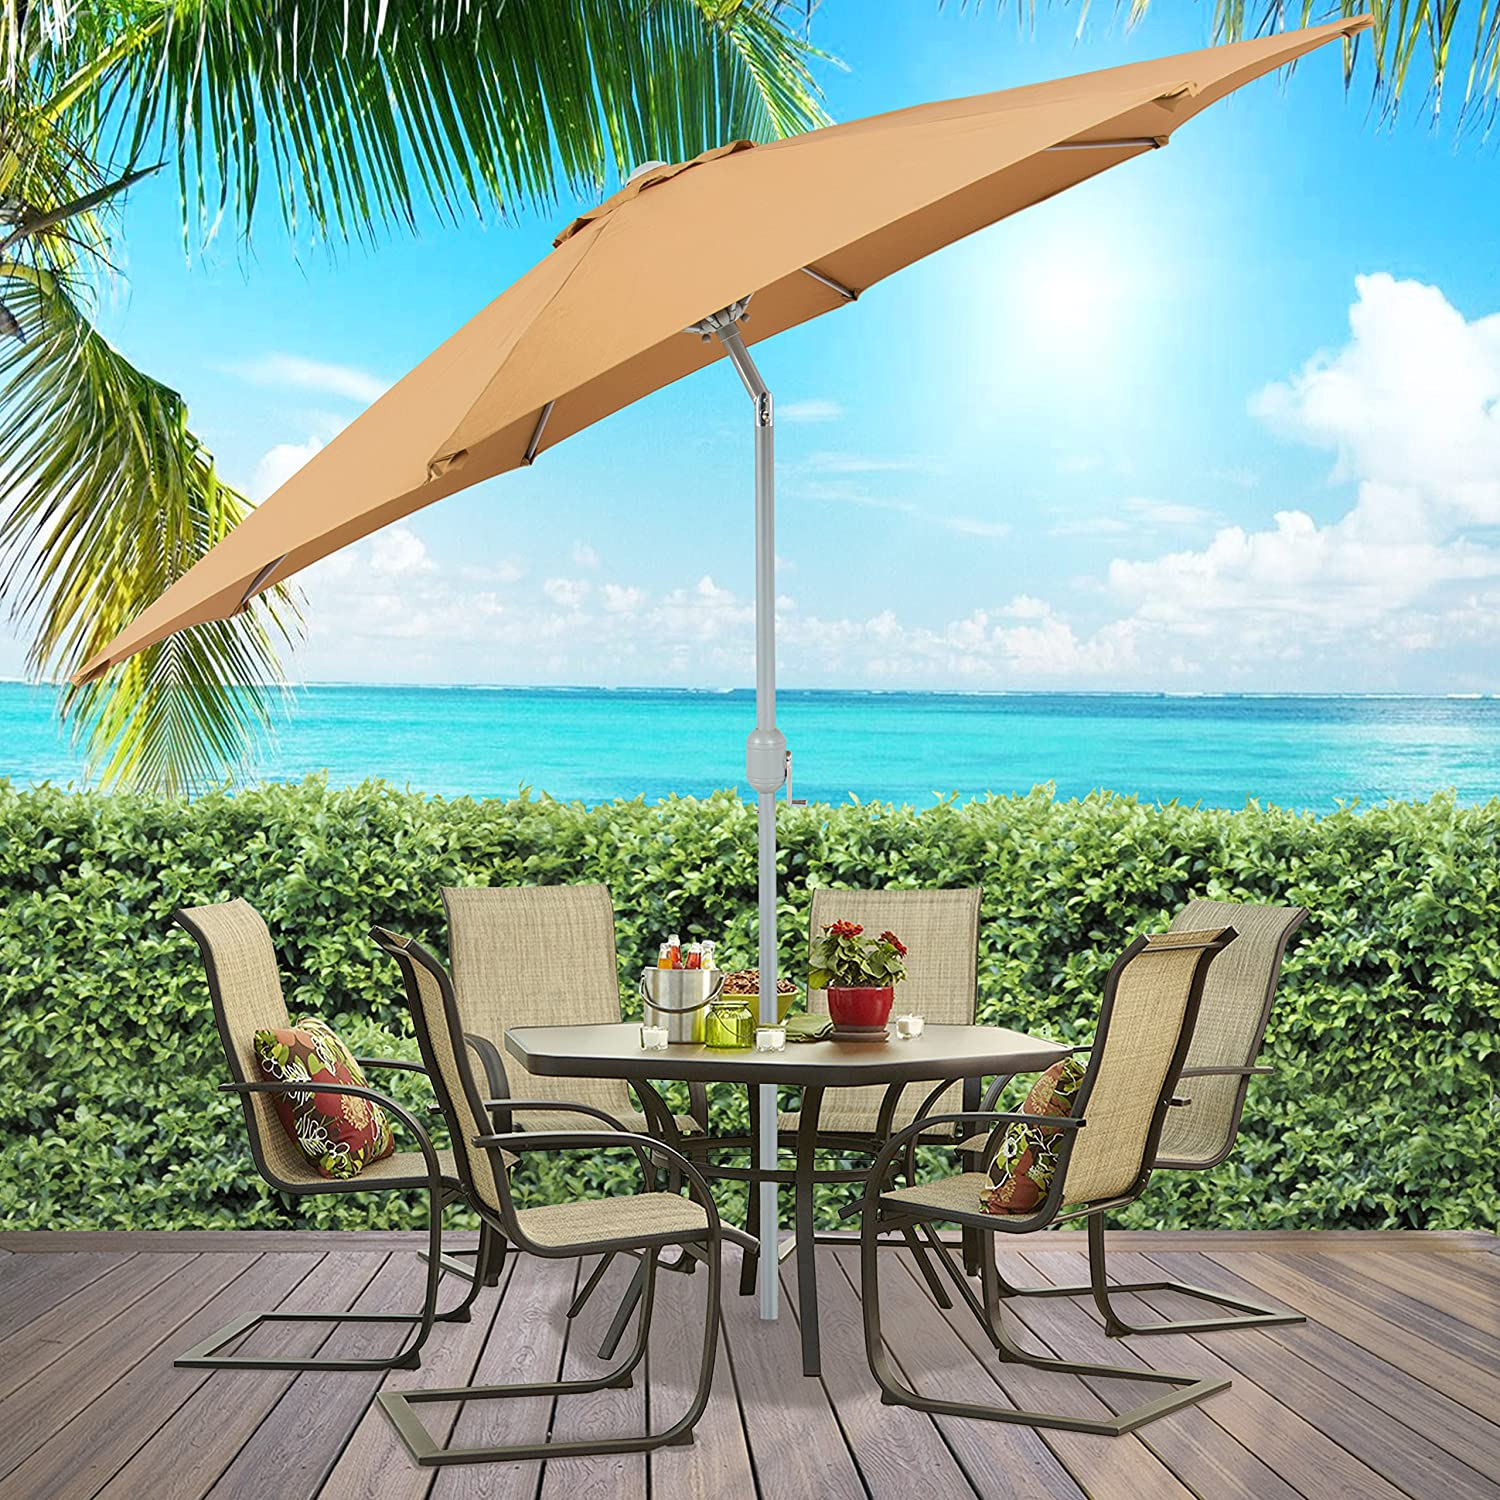 Amazon.com : Best Choice Products Patio Umbrella 9ft Aluminum Outdoor Patio  Market Umbrella W/Crank Tilt   Beige : Garden U0026 Outdoor